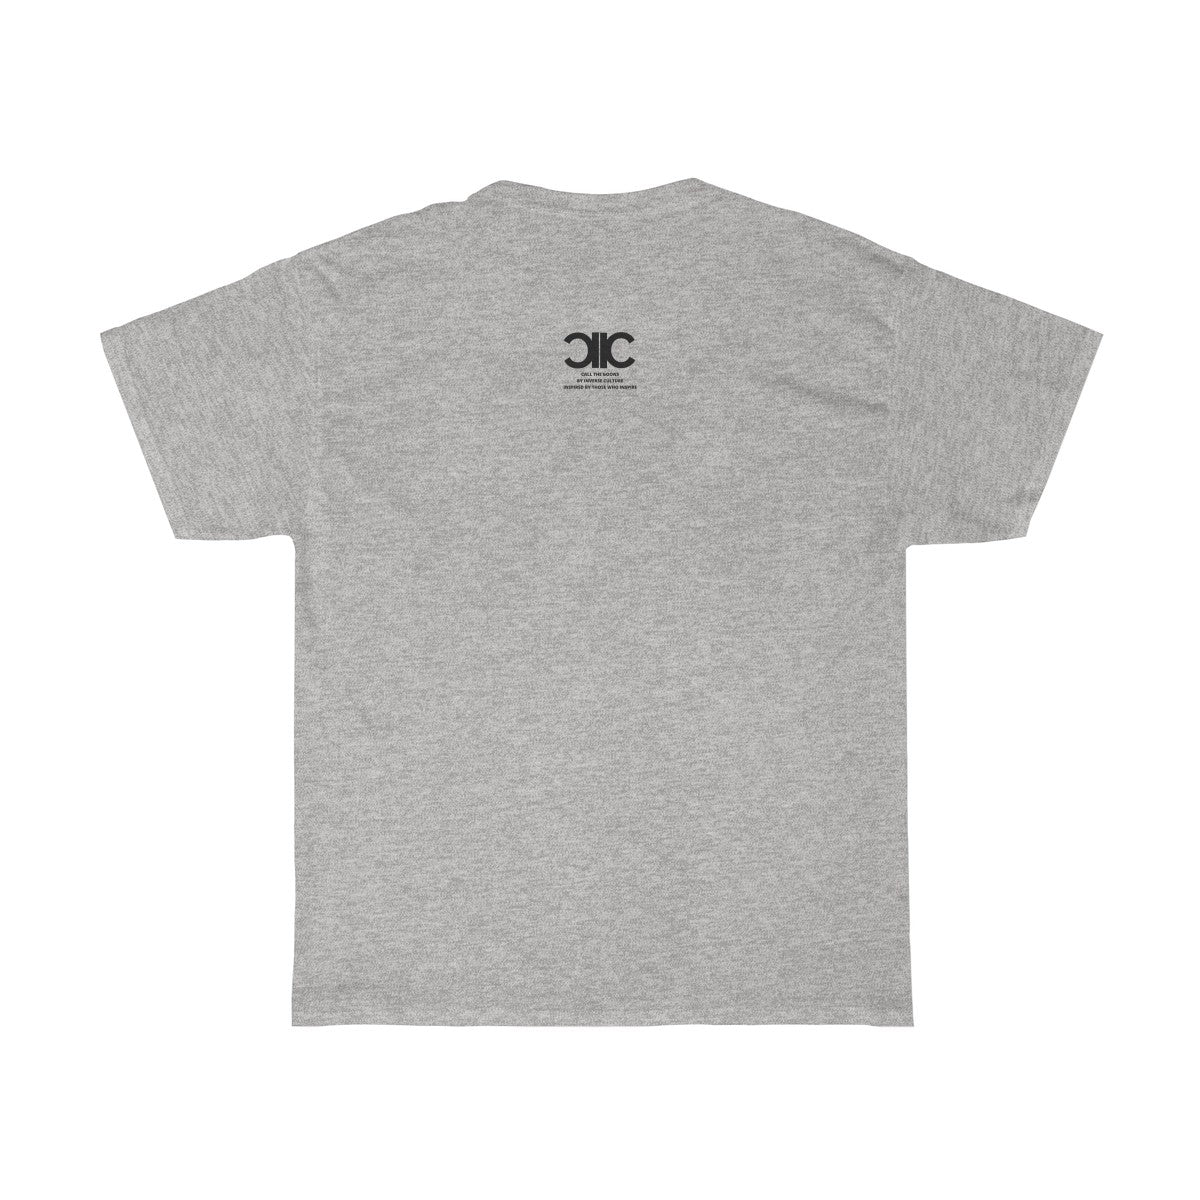 The Goonside Heavy Cotton T-Shirt in White